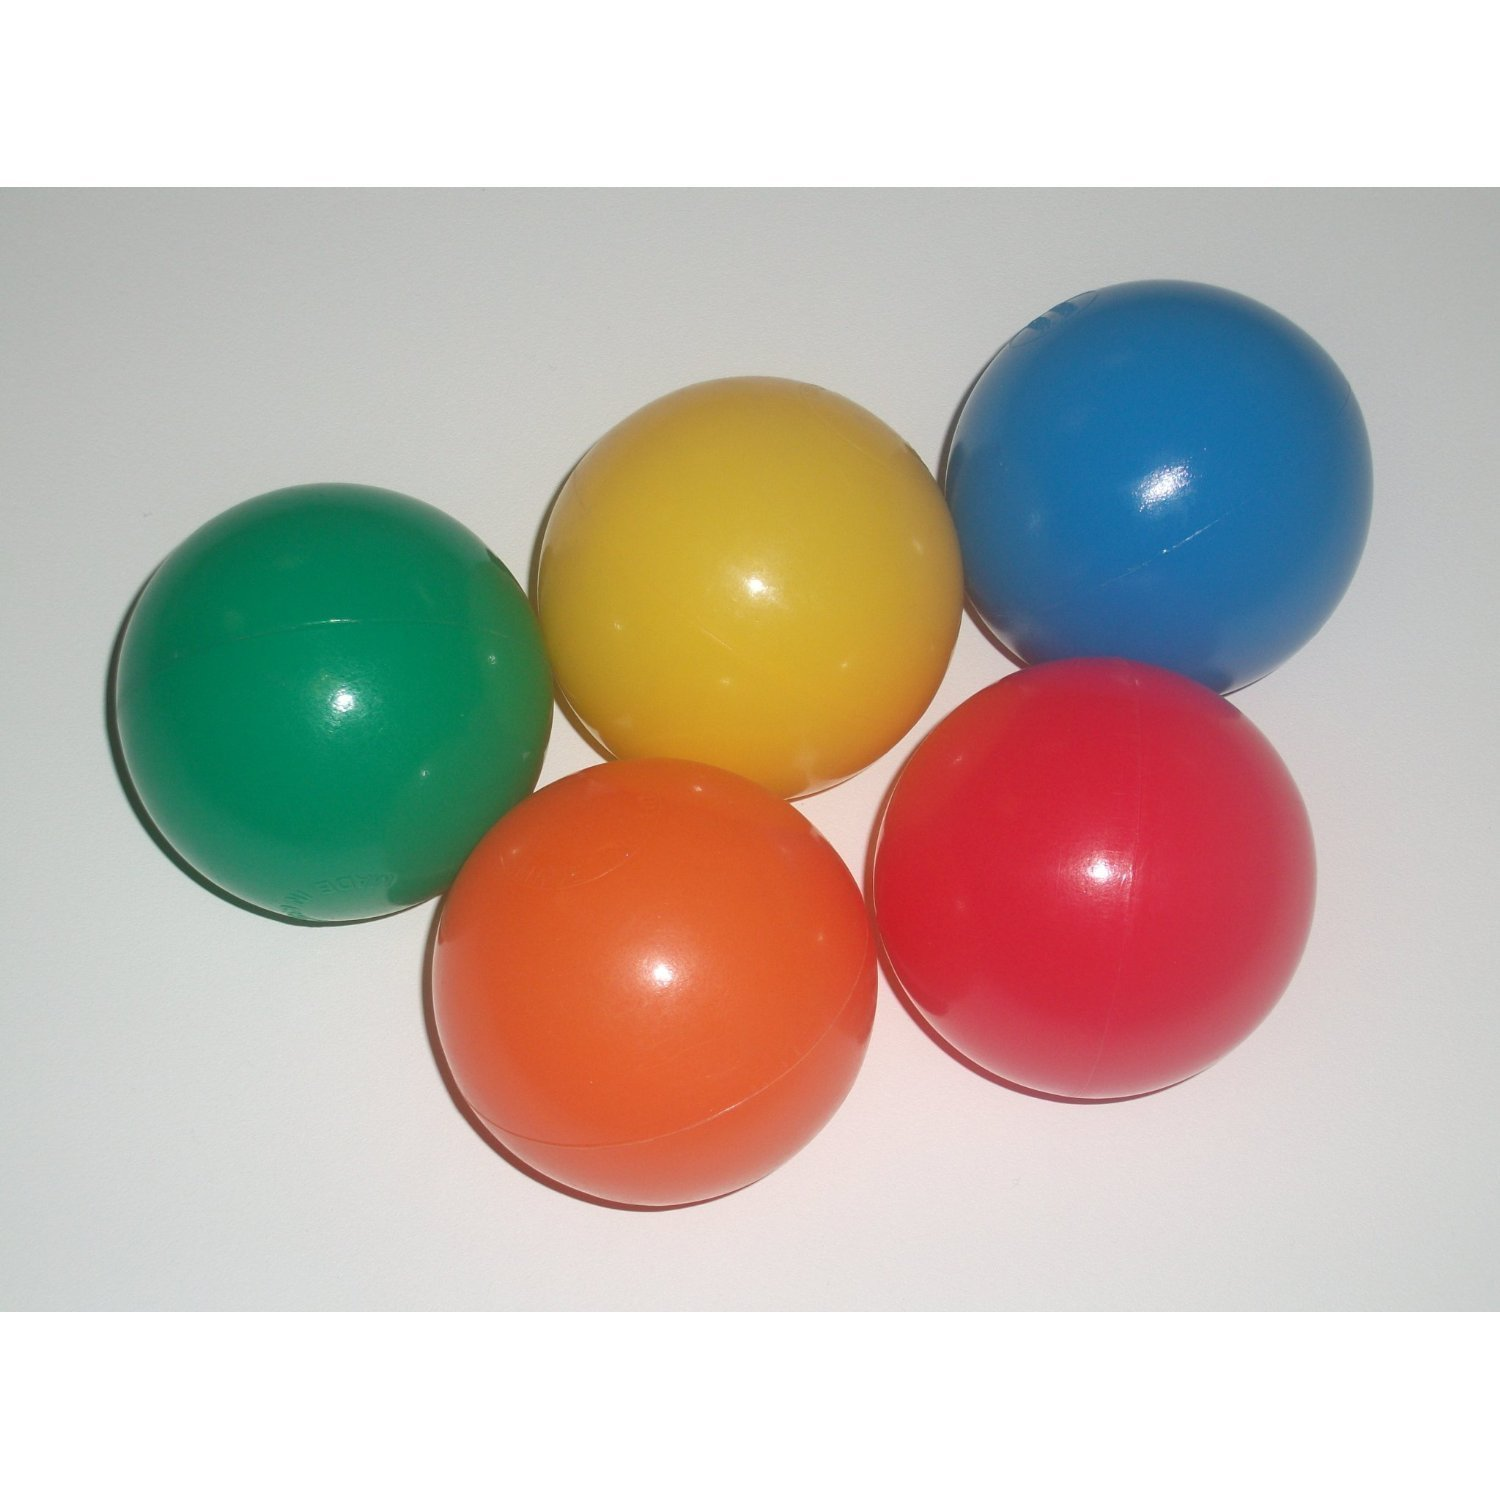 My Balls Pack of 500 Jumbo Size 3'' Crush-Proof Ball Pit Balls - Phthalate Free, BPA Free, PVC Free, in 5 Bright Colors